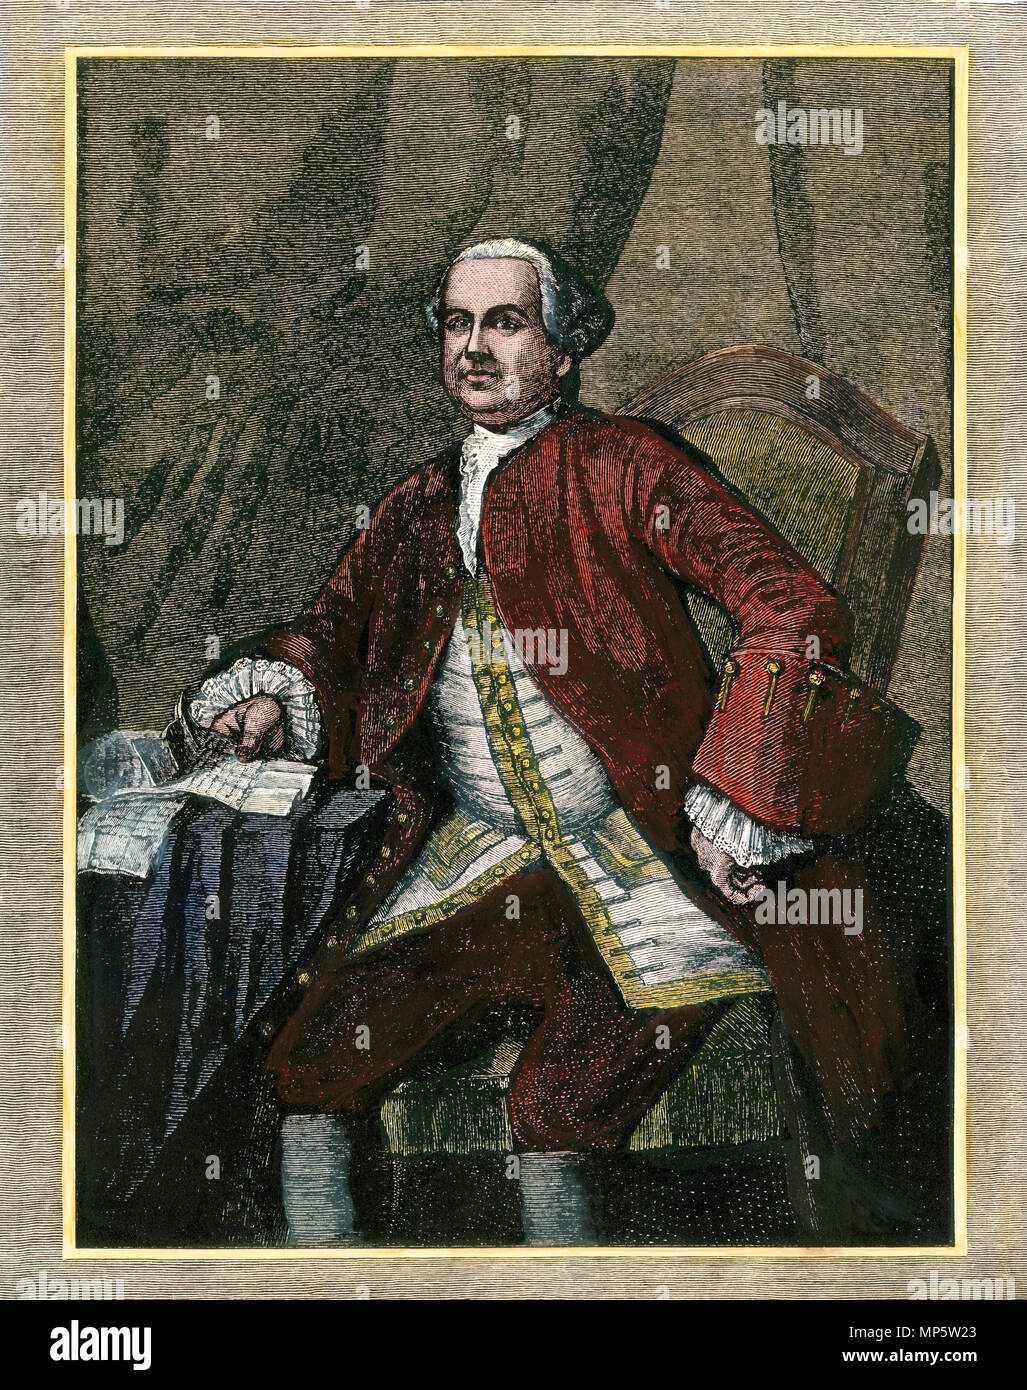 William Phipps, Royal Governor of Massachusetts Bay Colony, 1600s. Hand-colored woodcut - Stock Image